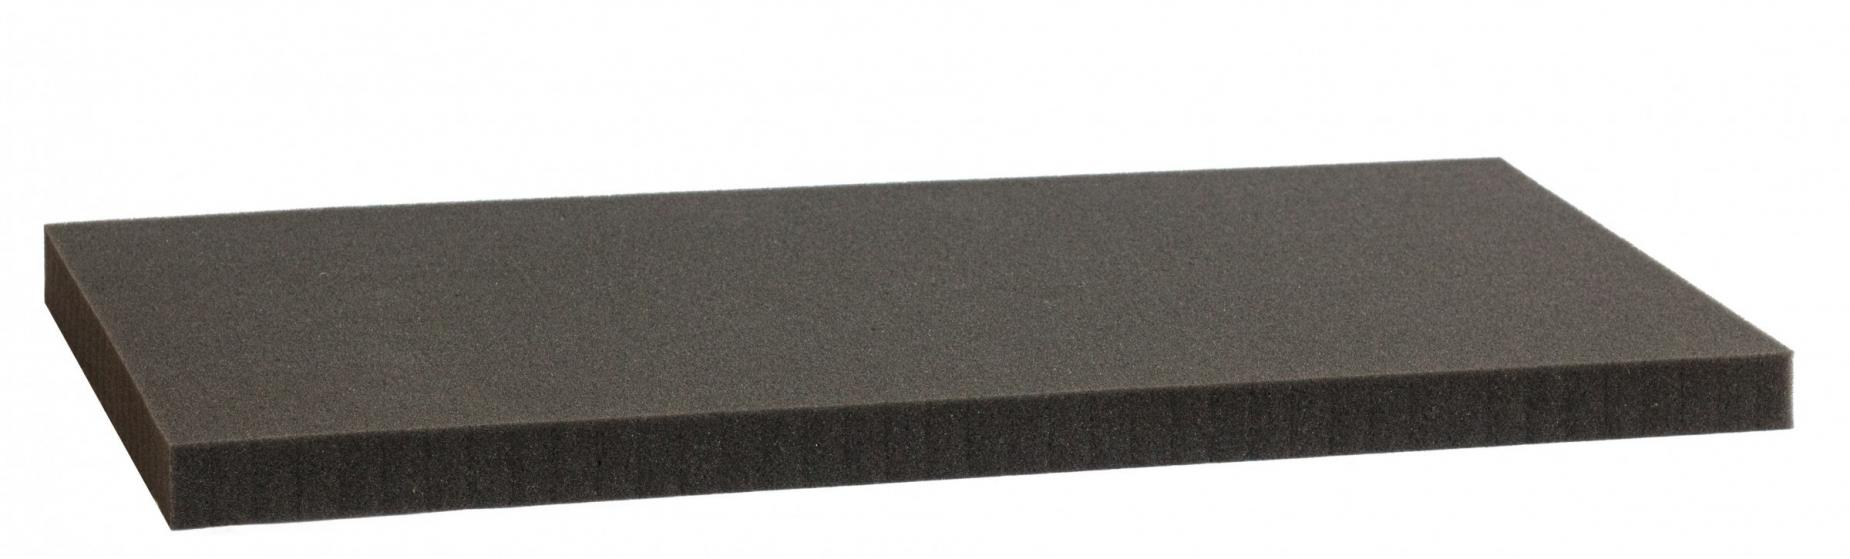 550 mm x 350 mm x 20 mm - Raster 15 mm - Pick and Pluck / Pre-Cubed foam tray